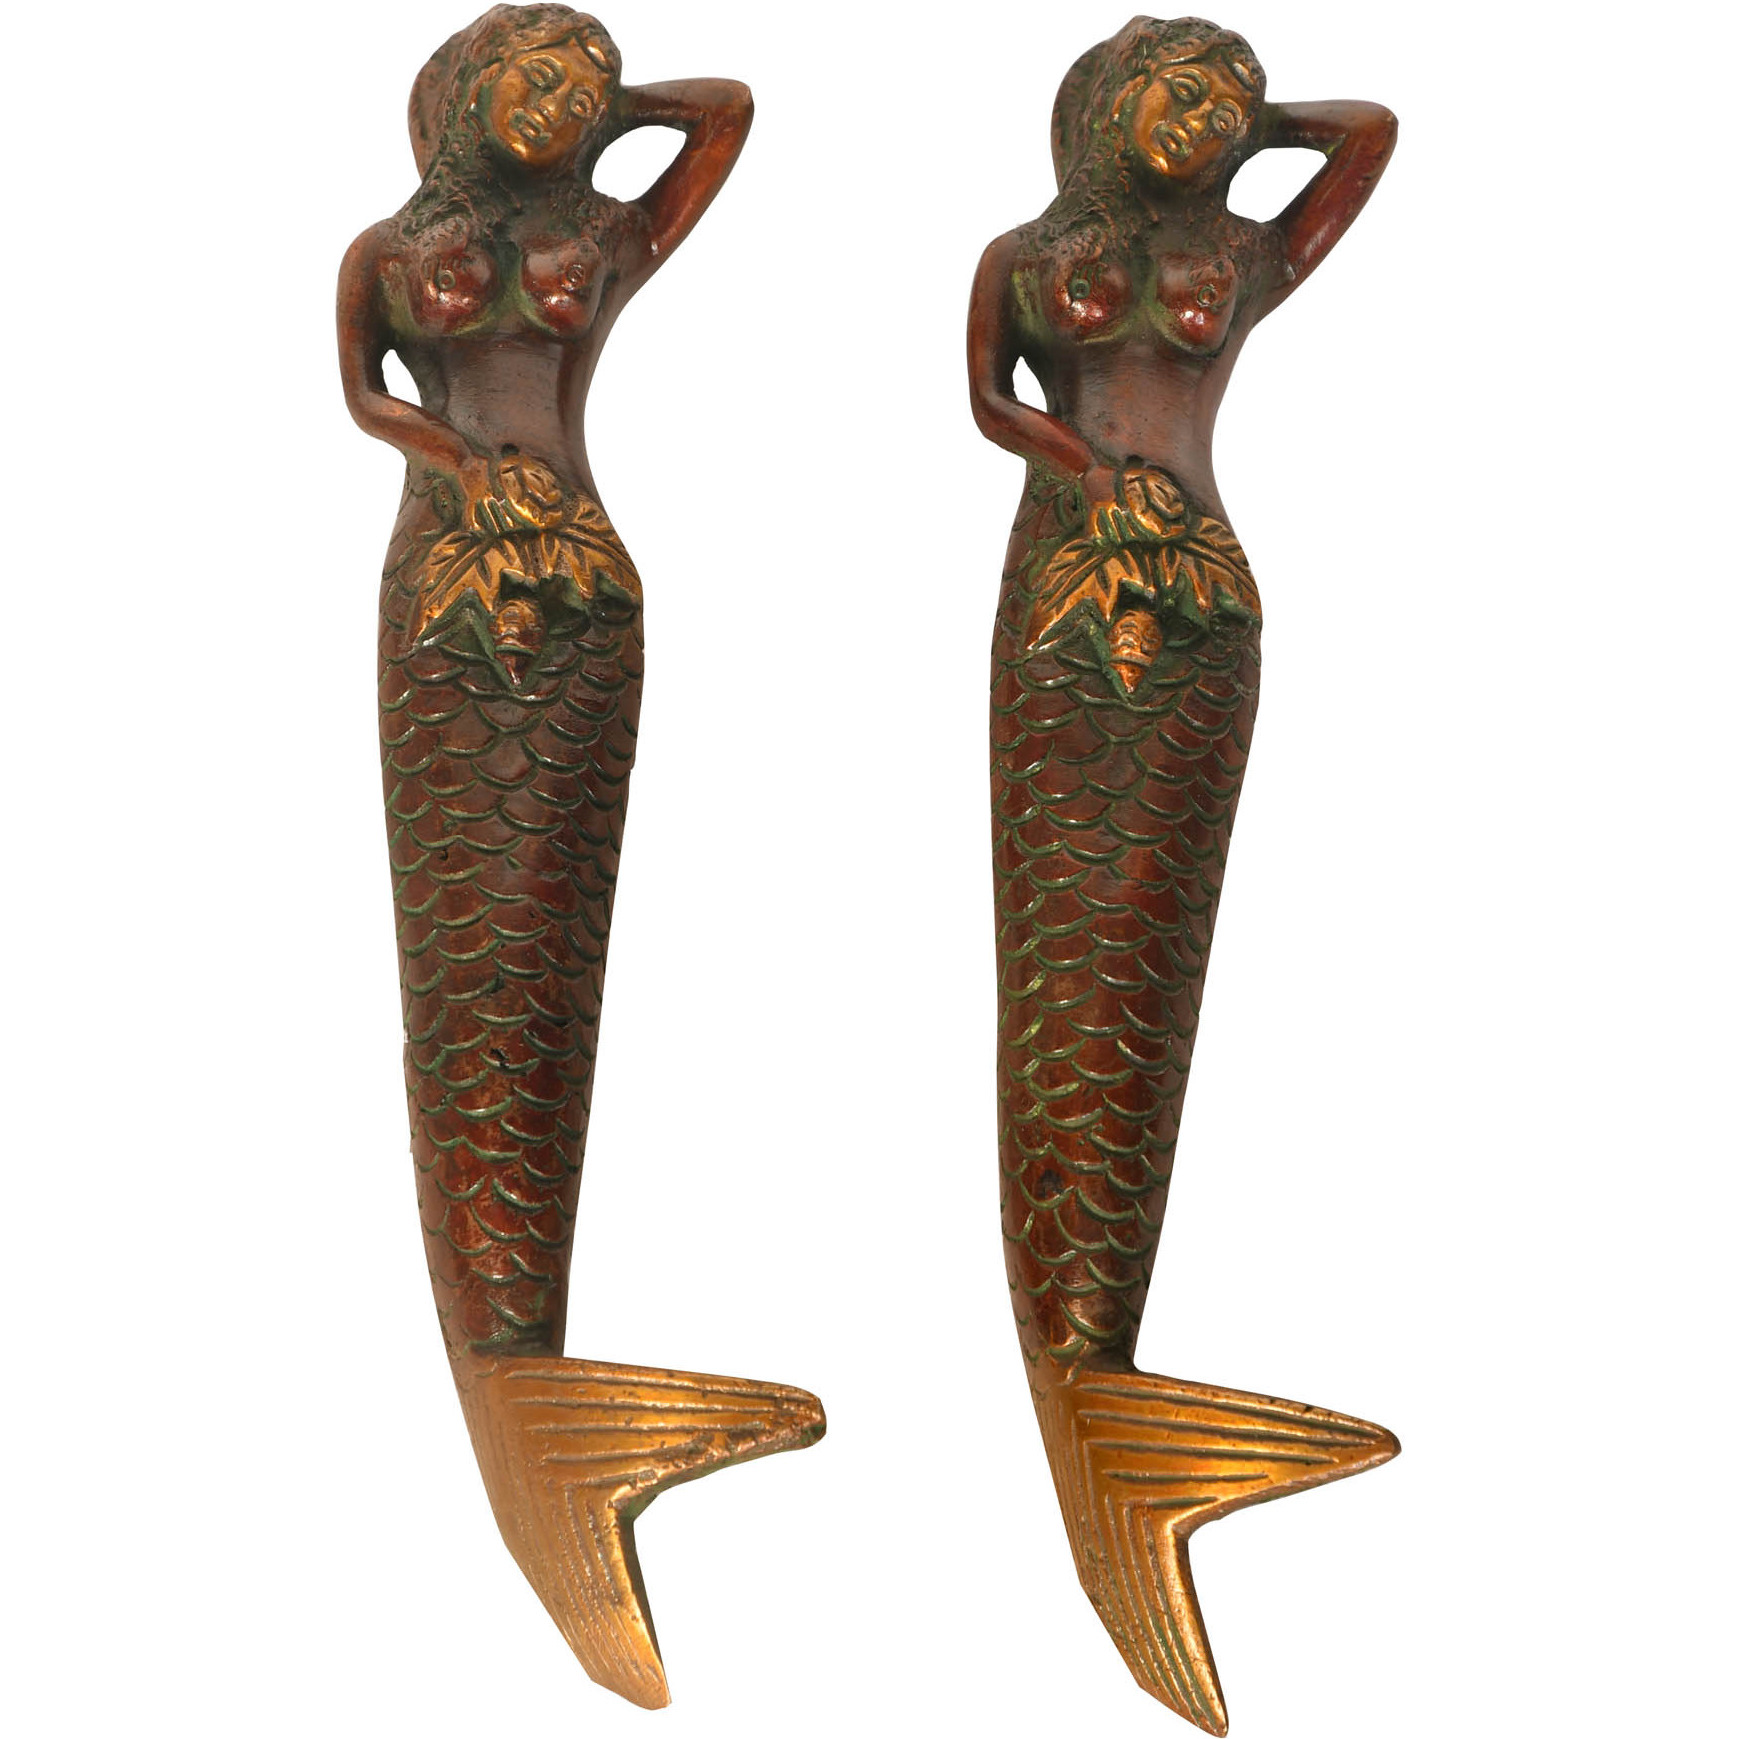 Mermaid Door Handles